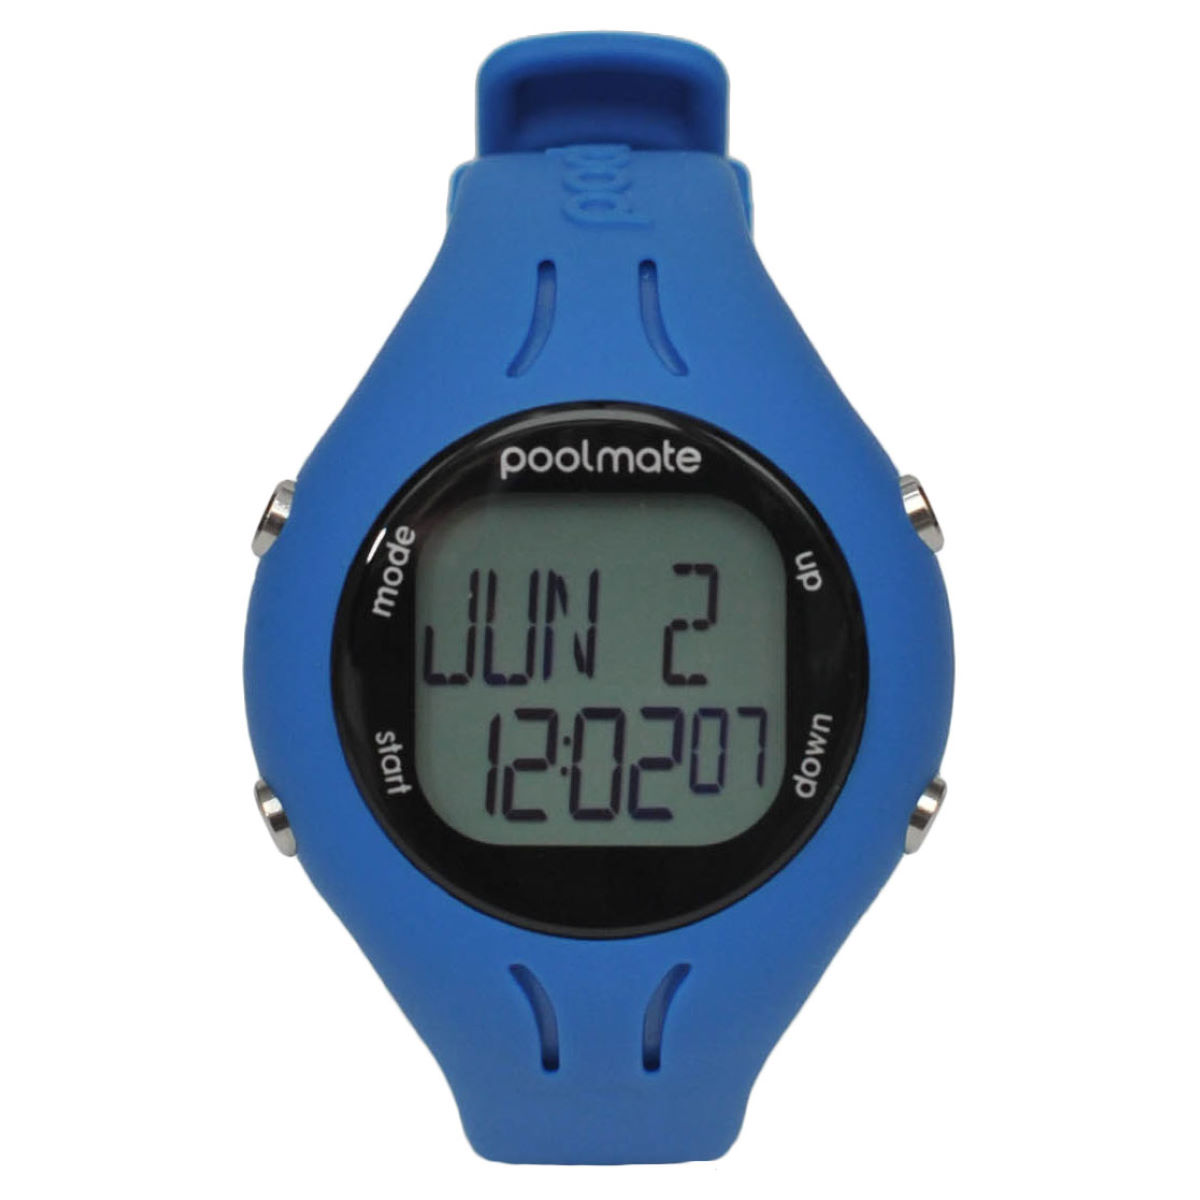 Montre Swimovate Pool Mate 2 - Bleu Compteurs GPS de running